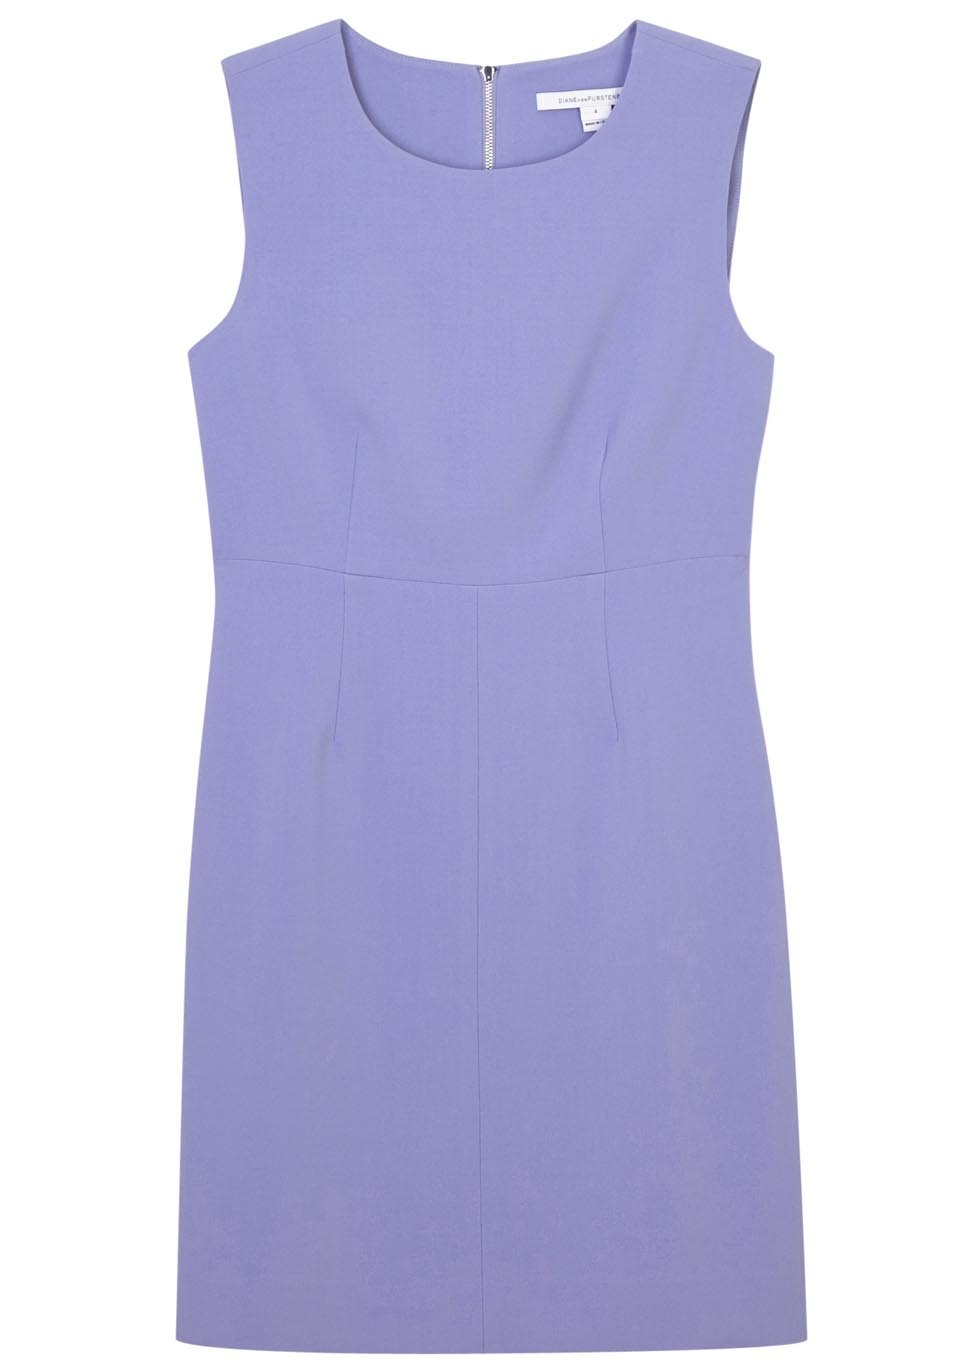 Carrie Lilac Crepe Shift Dress - style: shift; neckline: round neck; pattern: plain; sleeve style: sleeveless; predominant colour: lilac; length: just above the knee; fit: body skimming; fibres: polyester/polyamide - mix; sleeve length: sleeveless; texture group: crepes; pattern type: fabric; occasions: creative work; season: s/s 2016; wardrobe: highlight